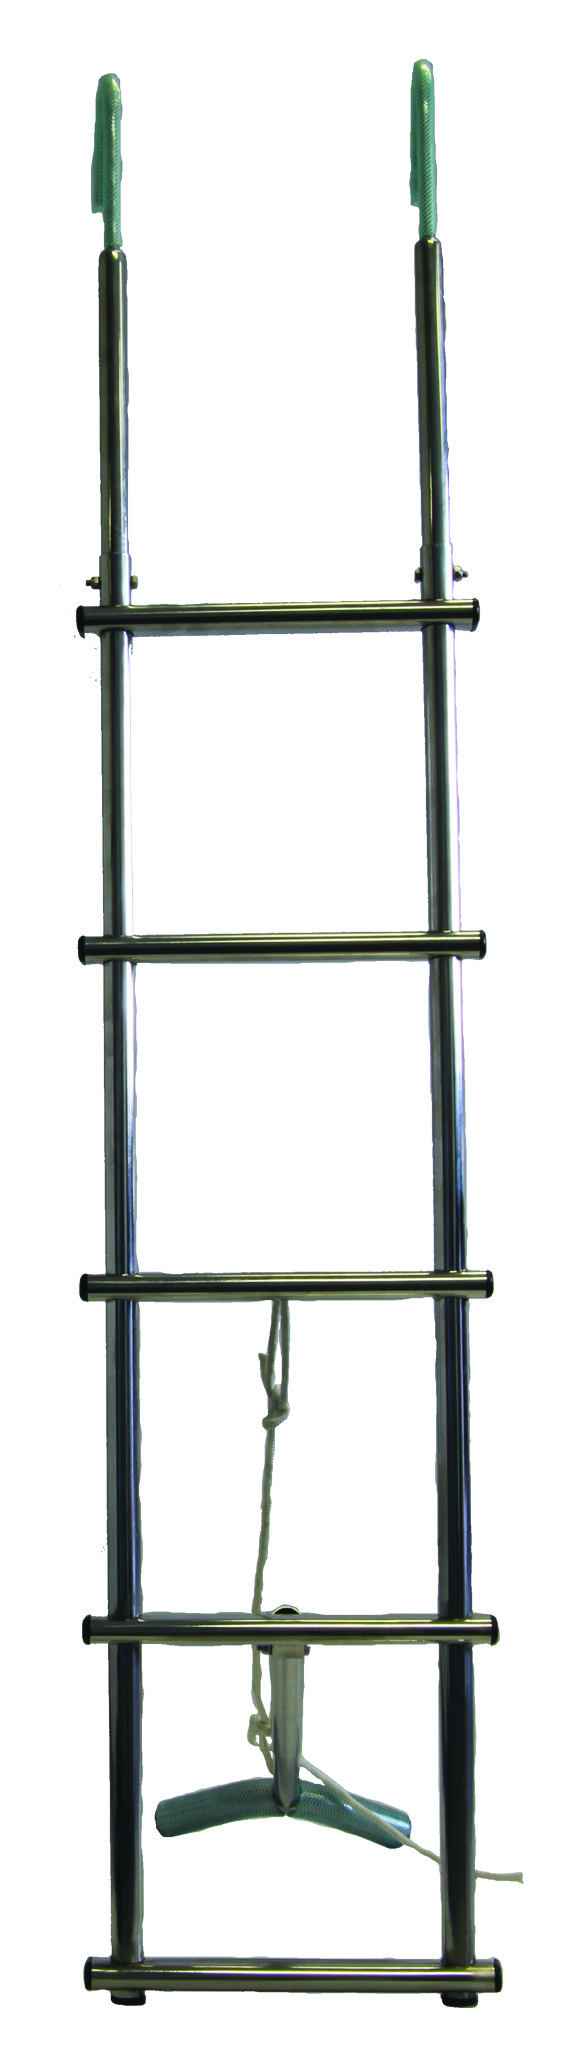 Talamex Steel Ladder With Hooks 4 Steps